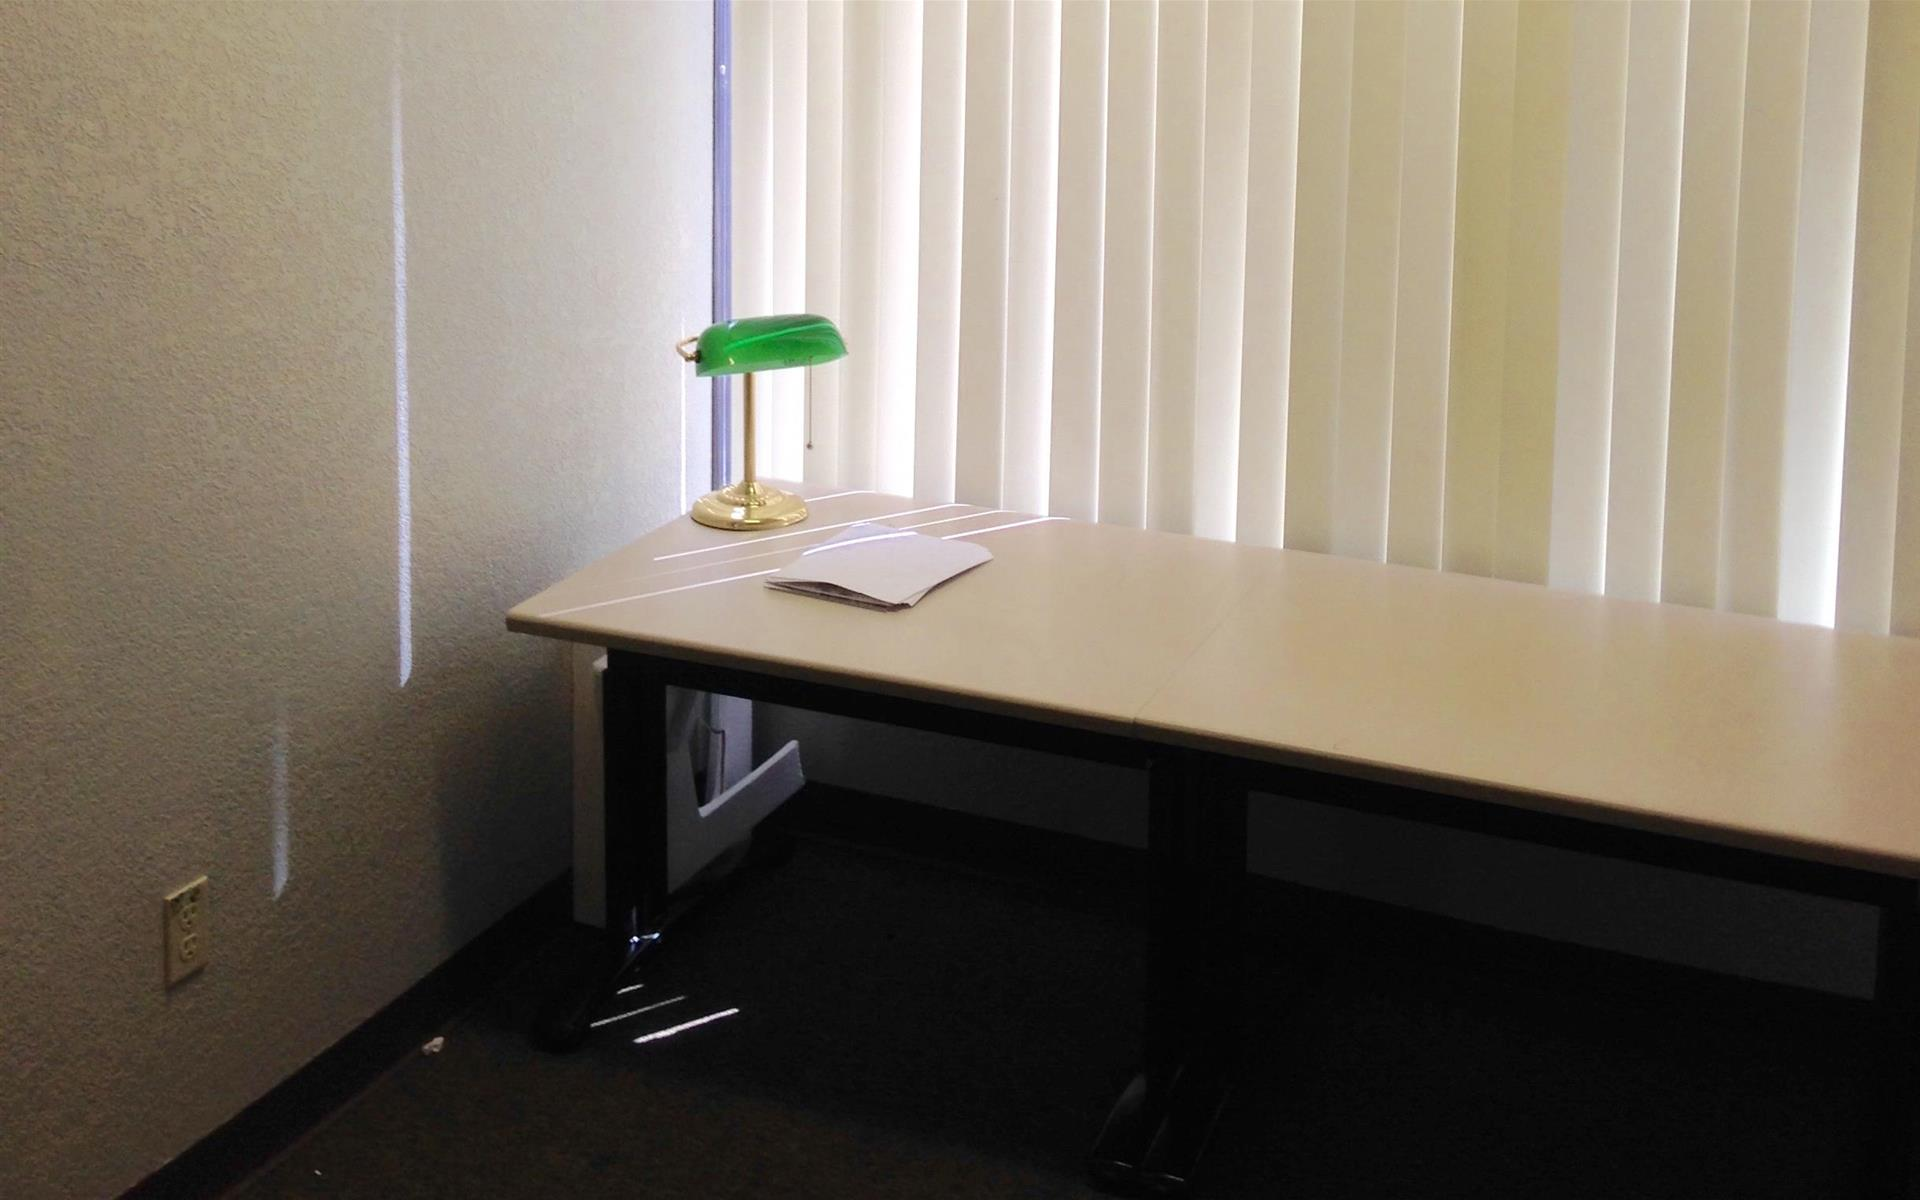 Suite 2:10 Coworking - Suite 210 - Small Office for 1-2